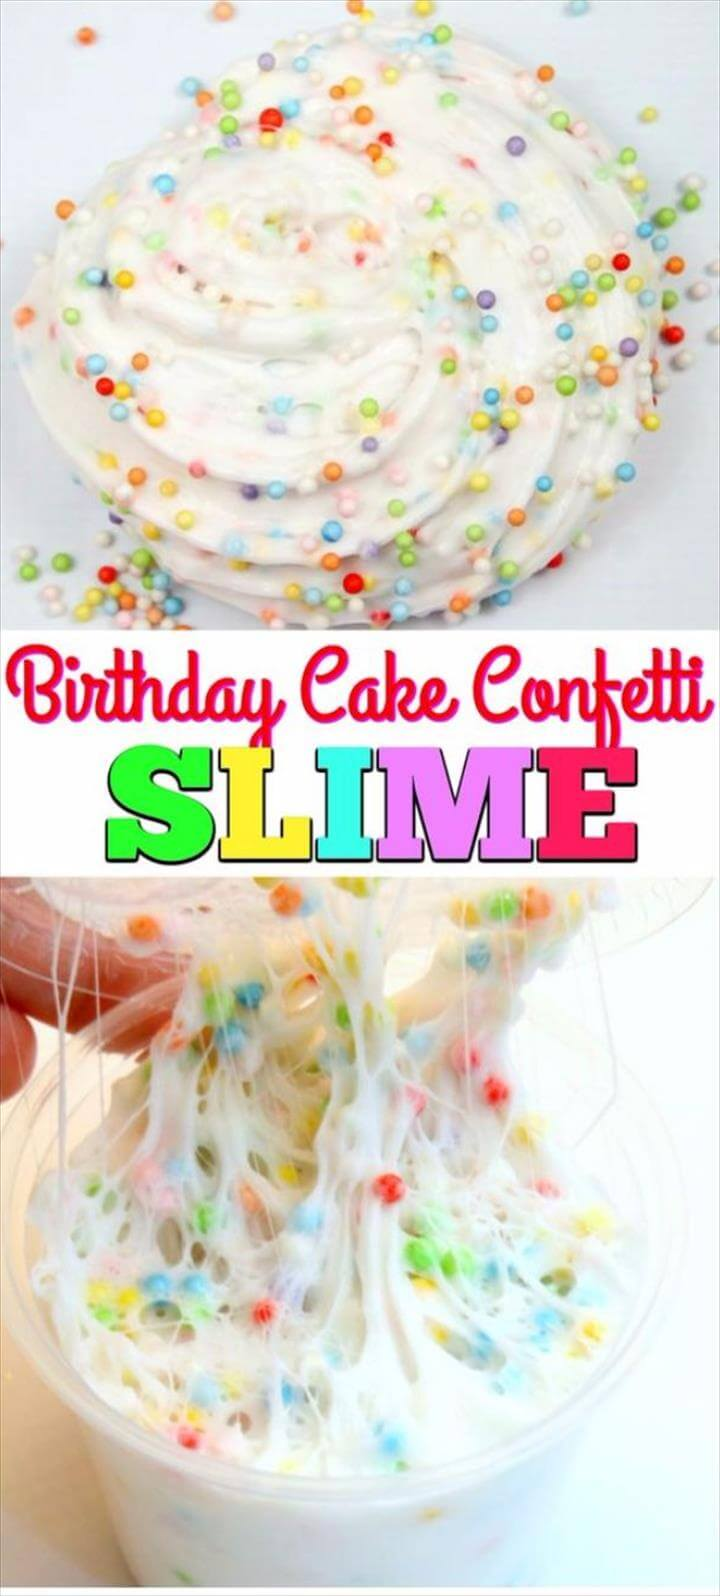 Best DIY Slime Recipes - Birthday Cake Confetti Slime - Cool and Easy Slime Recipe and